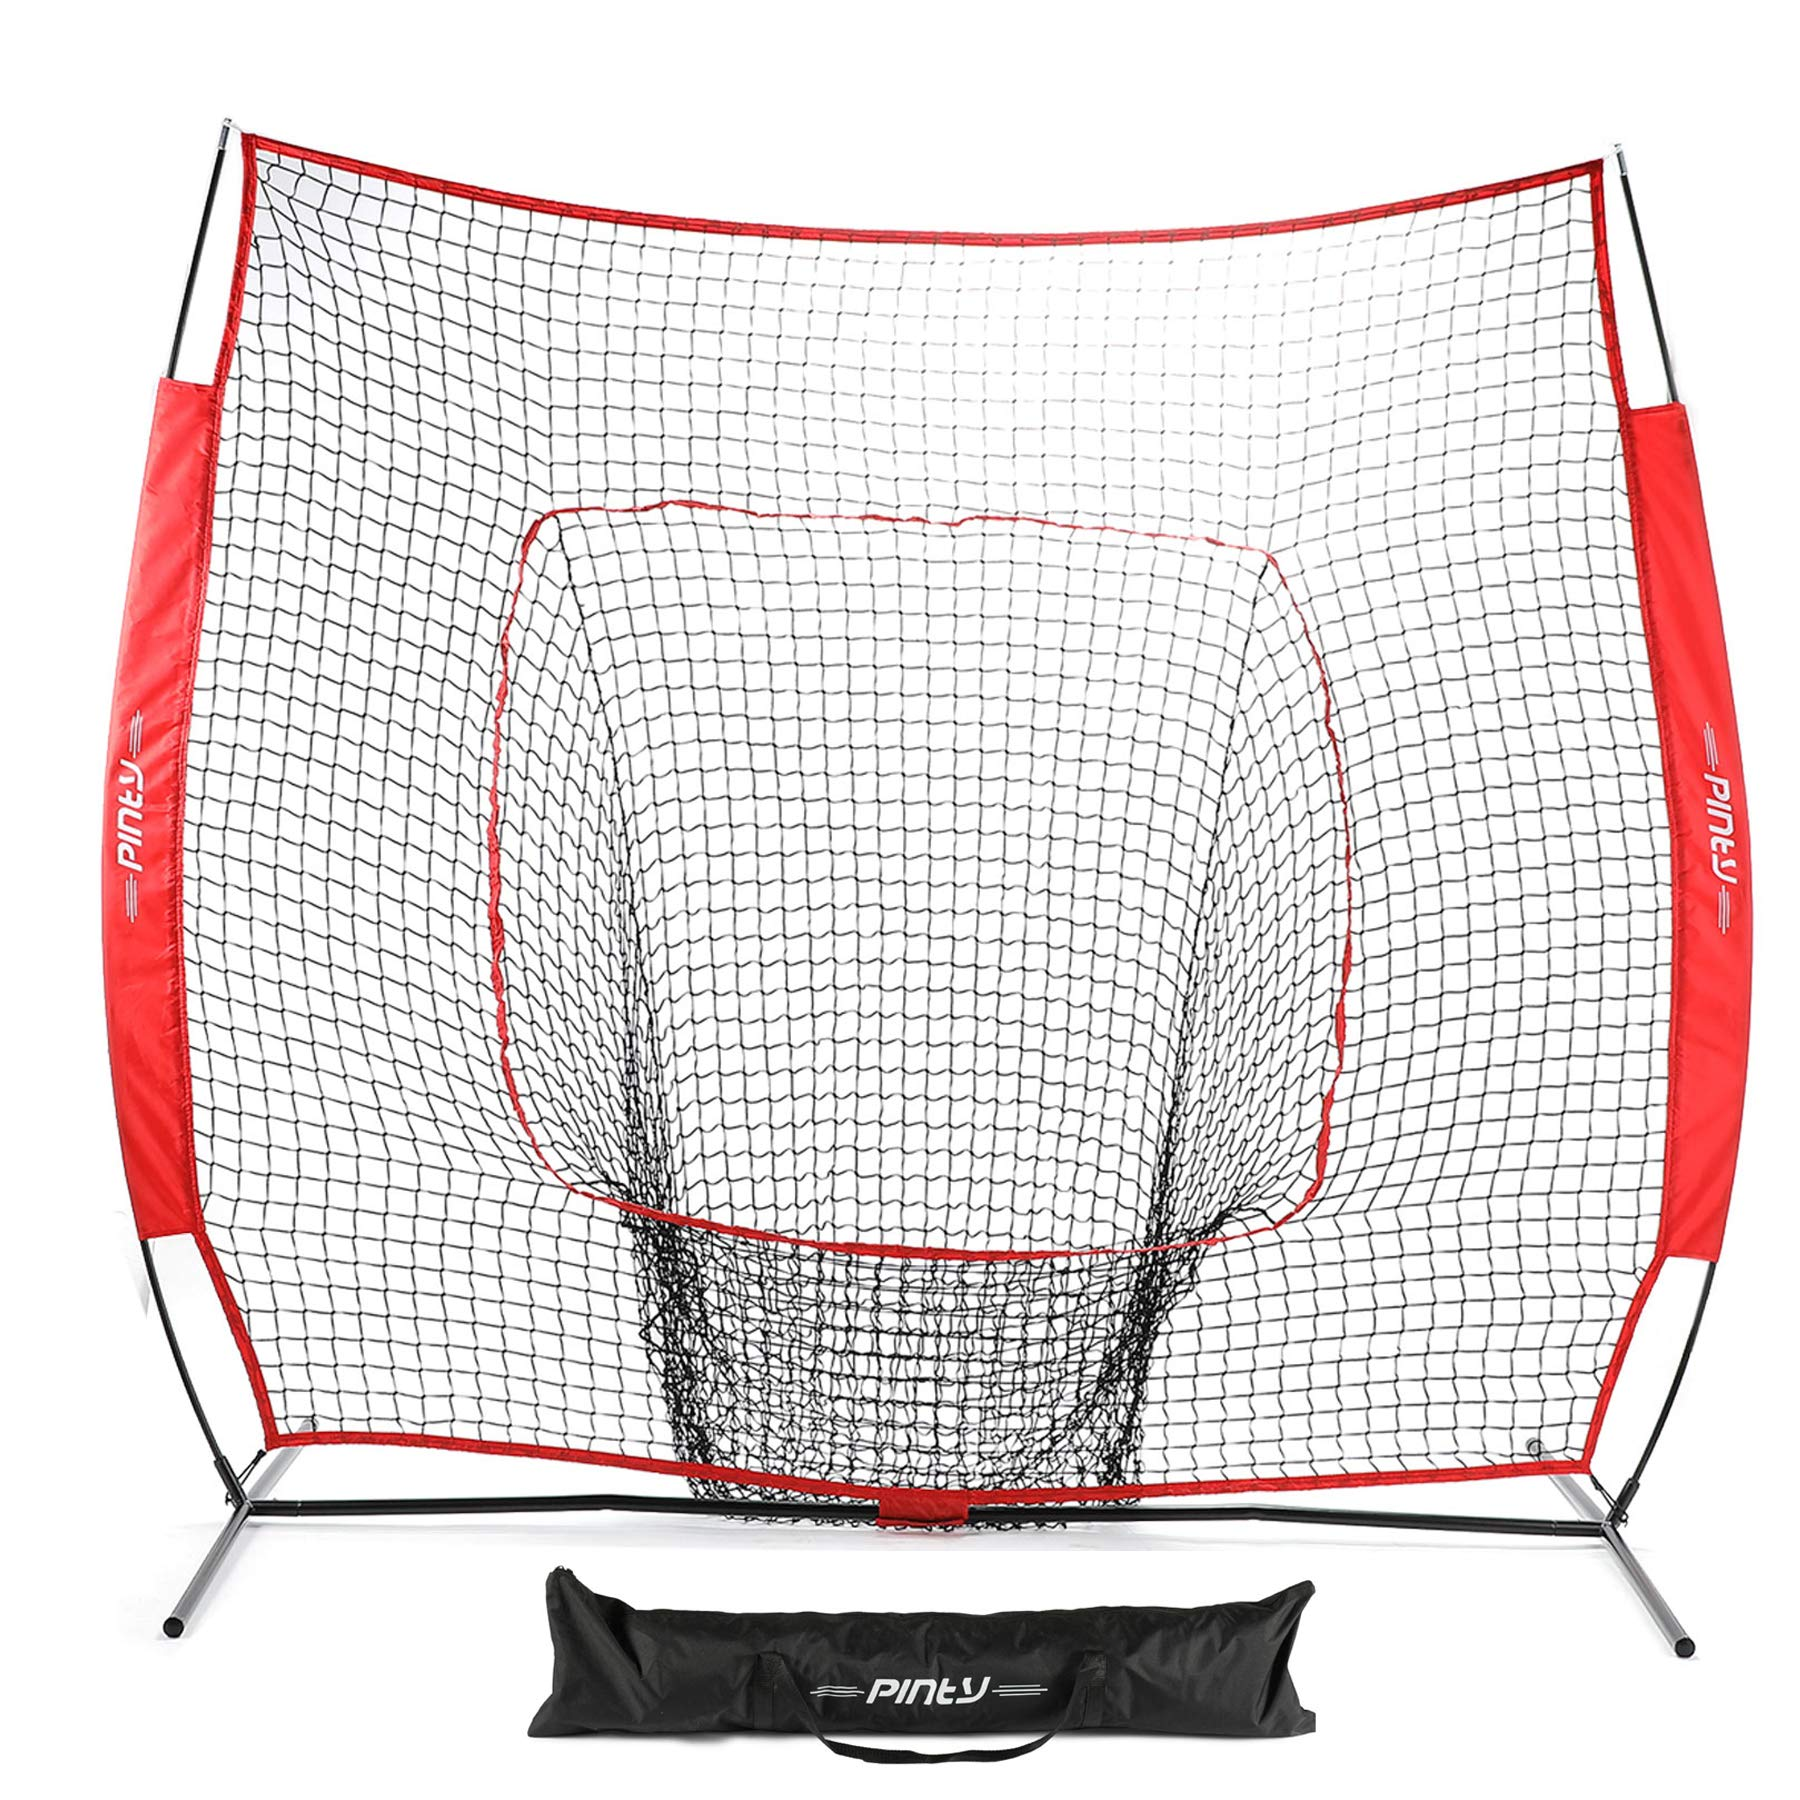 Pinty Baseball and Softball Practice Net 7×7ft Portable Hitting Batting Training Net with Carry Bag and Metal Frame by Pinty